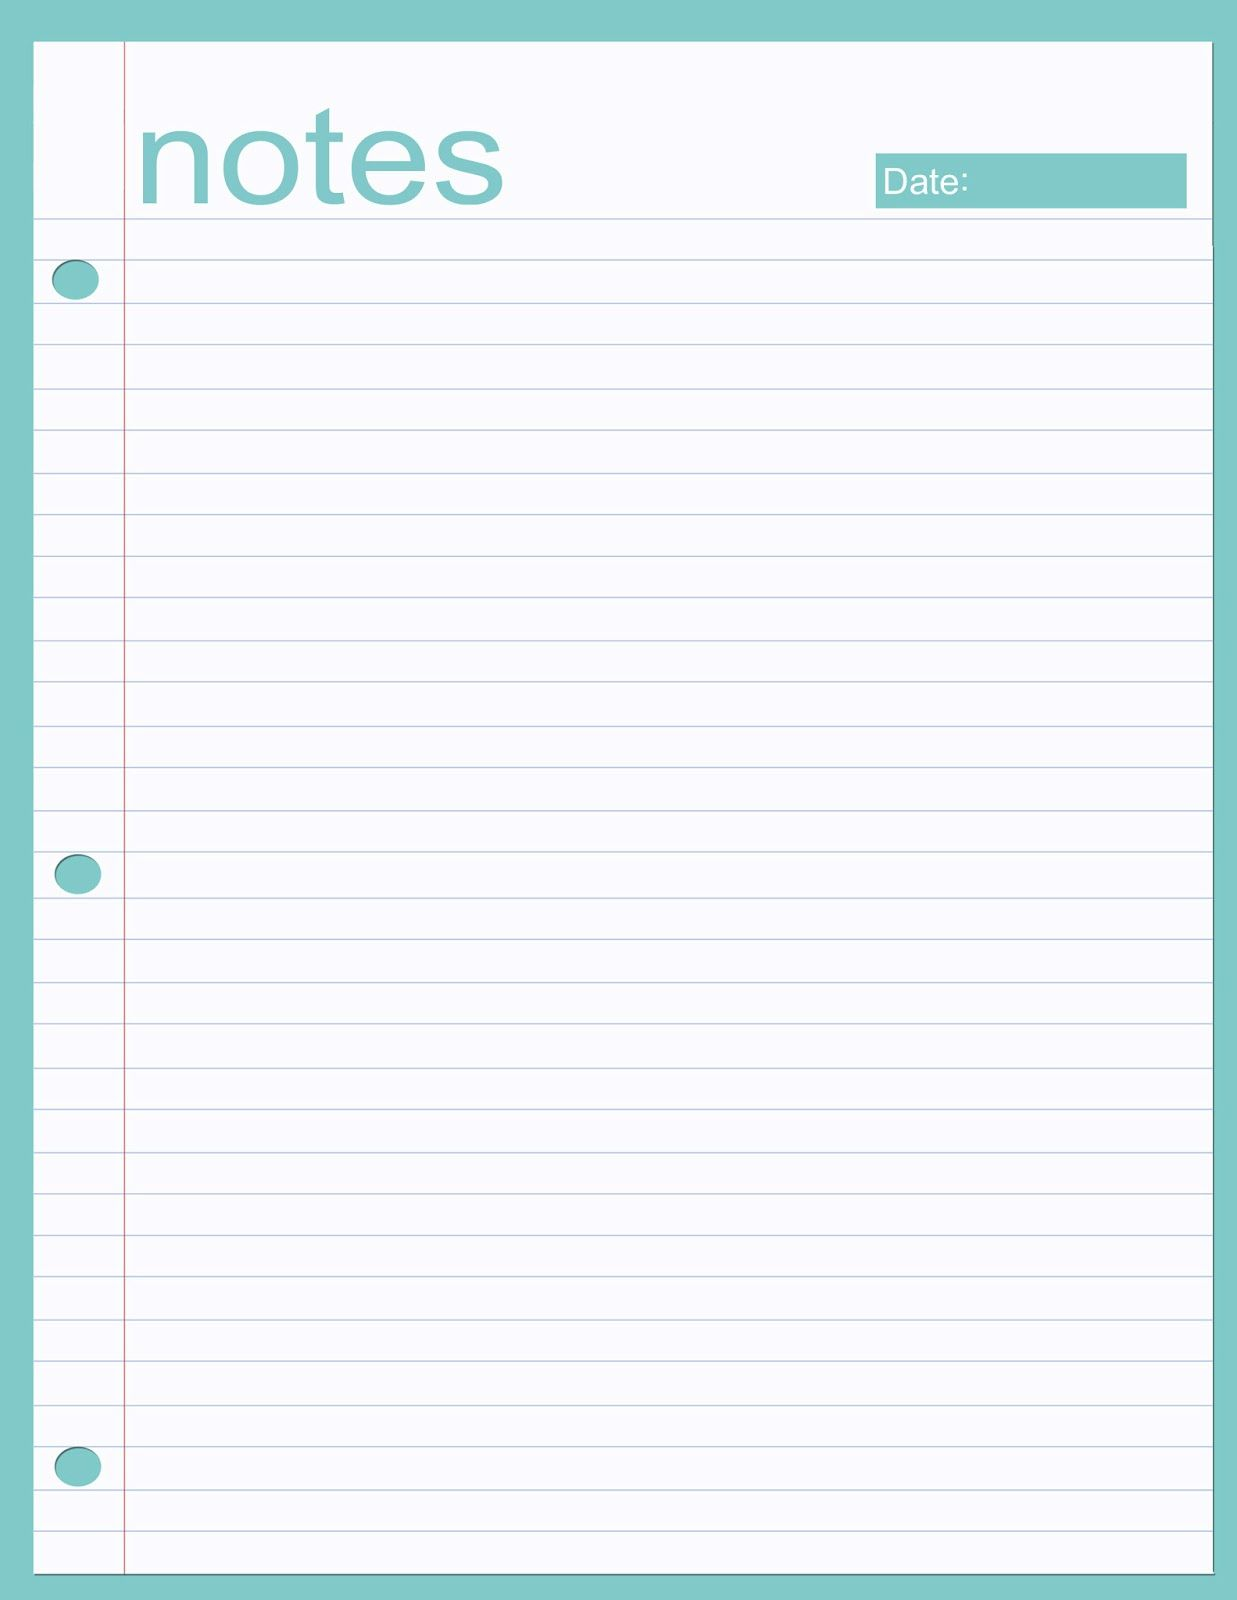 photograph relating to Printable Notes Page known as Printable notes web site Planners Planner webpages, Printable